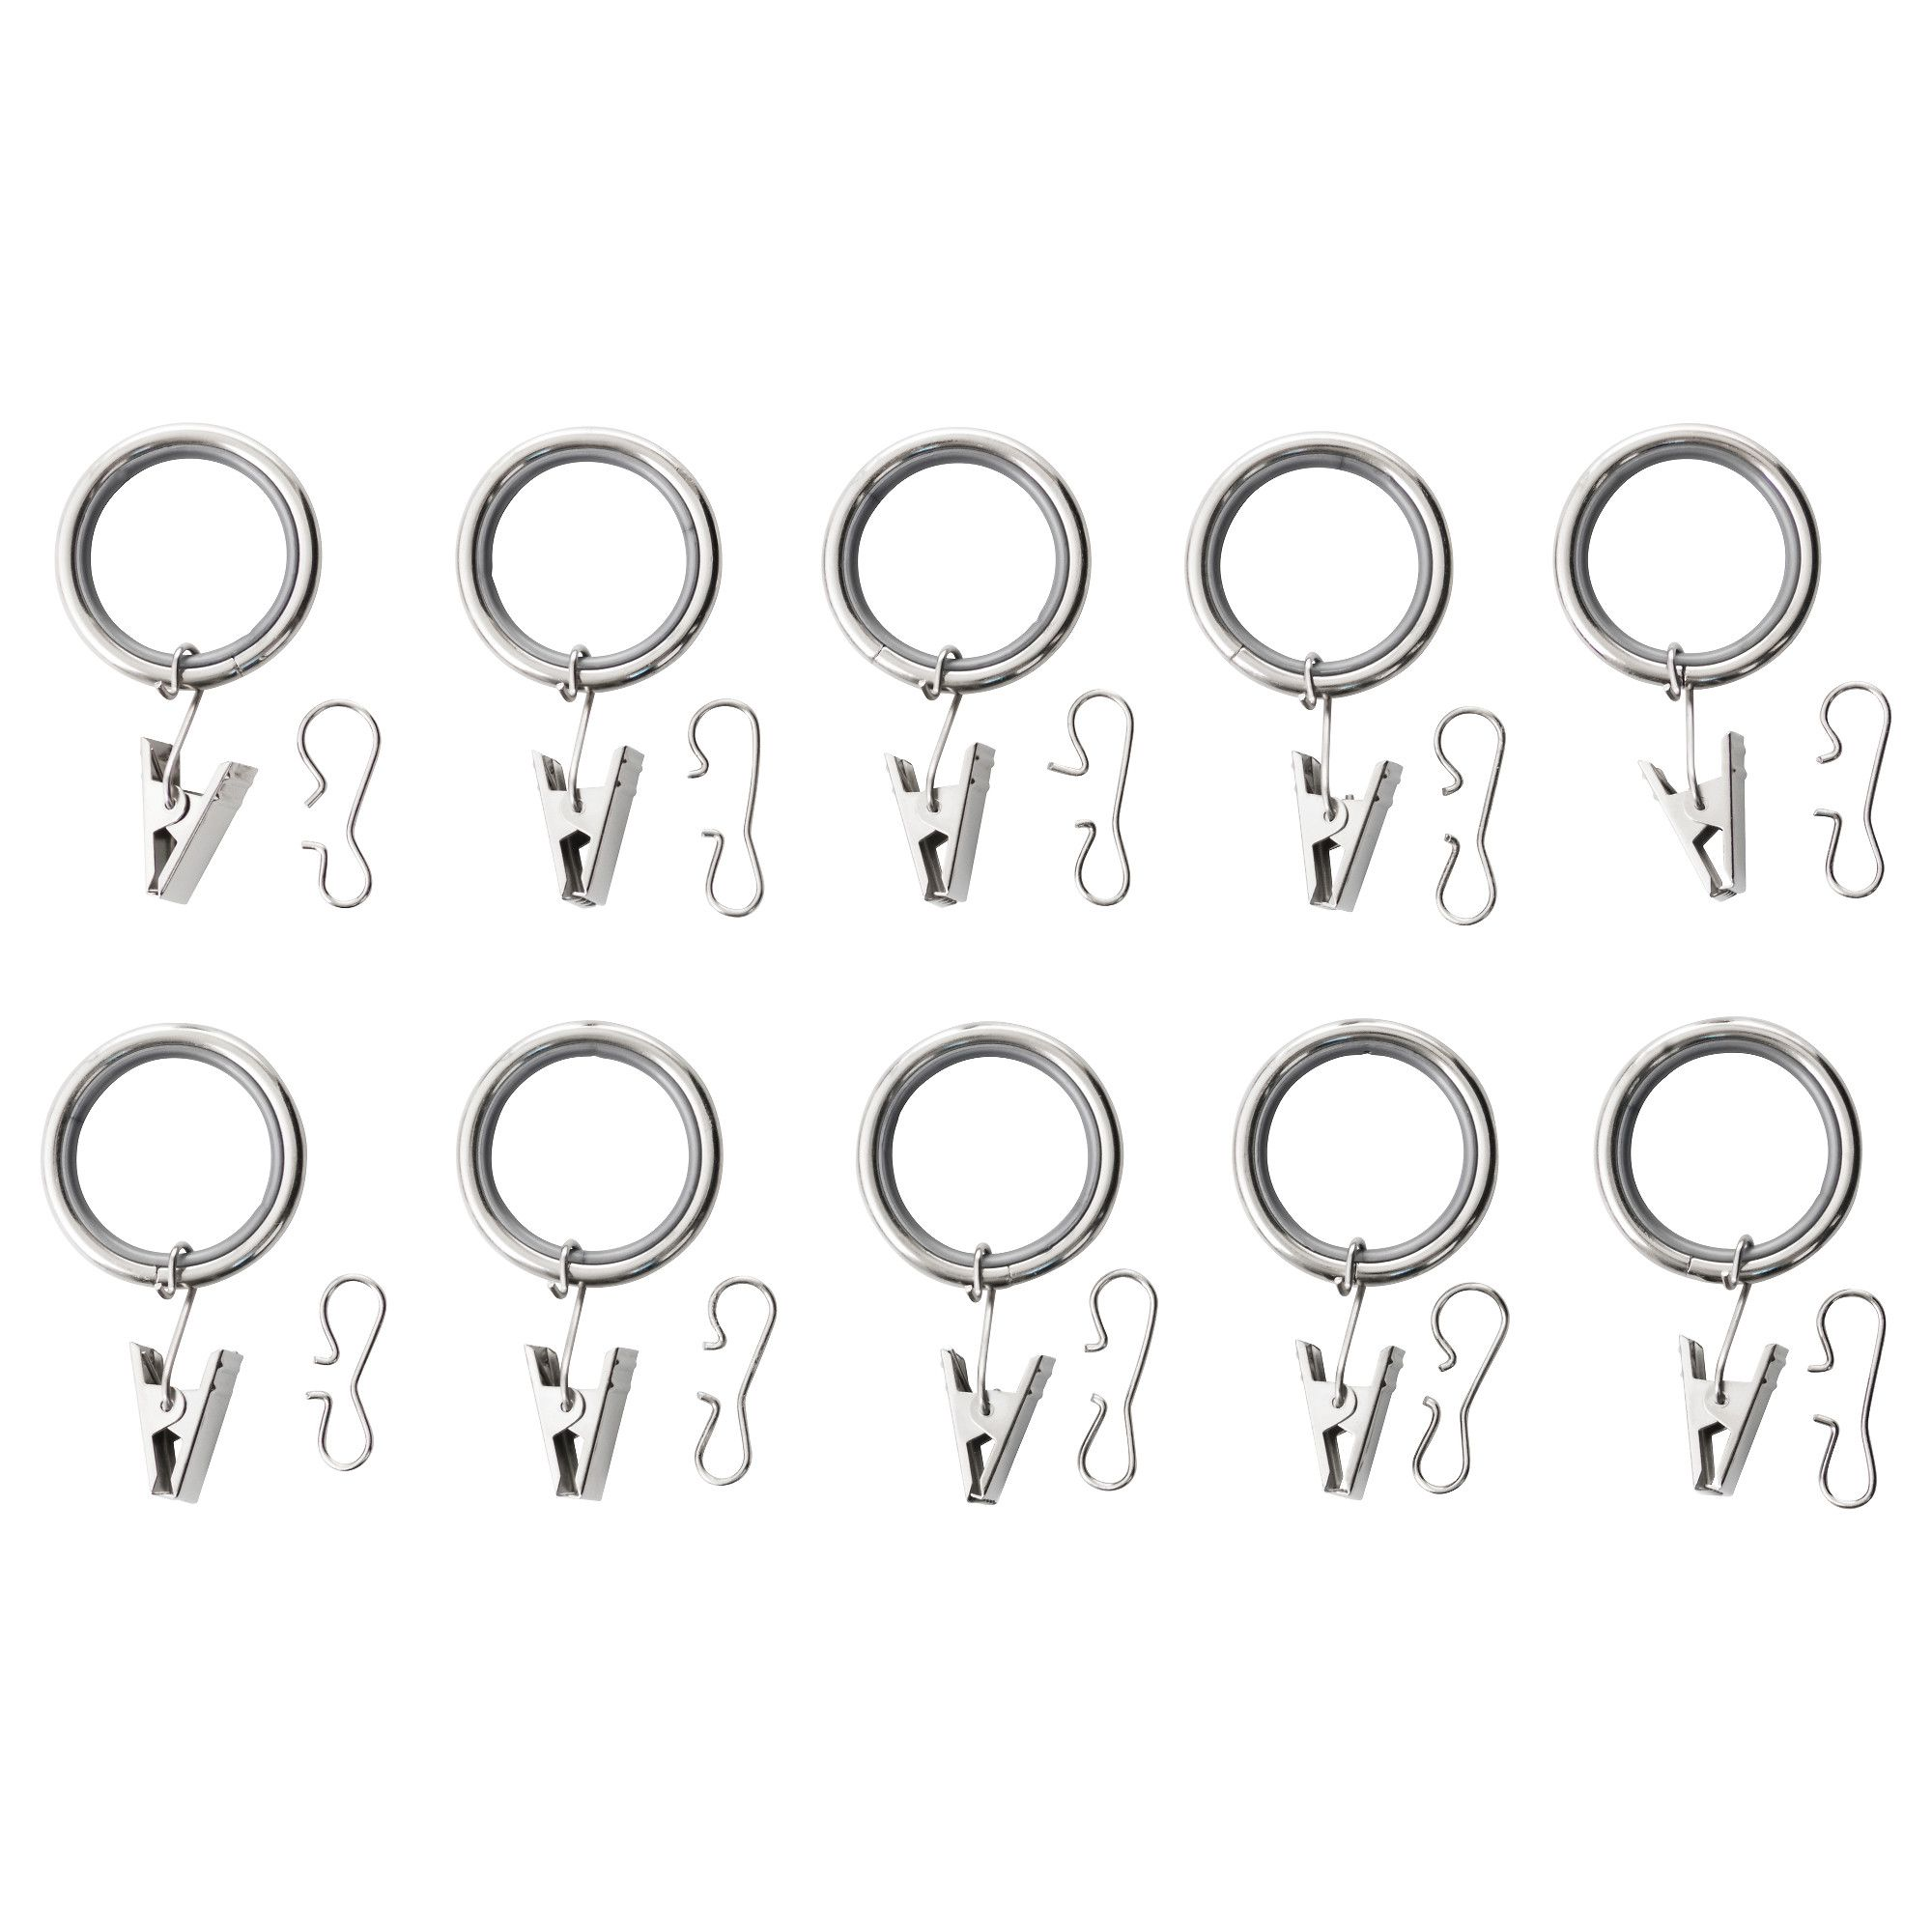 Syrlig curtain ring with clip and hook ikea you can hang your curtains - Ikea Syrlig Curtain Ring With Clip And Hook You Can Hang Your